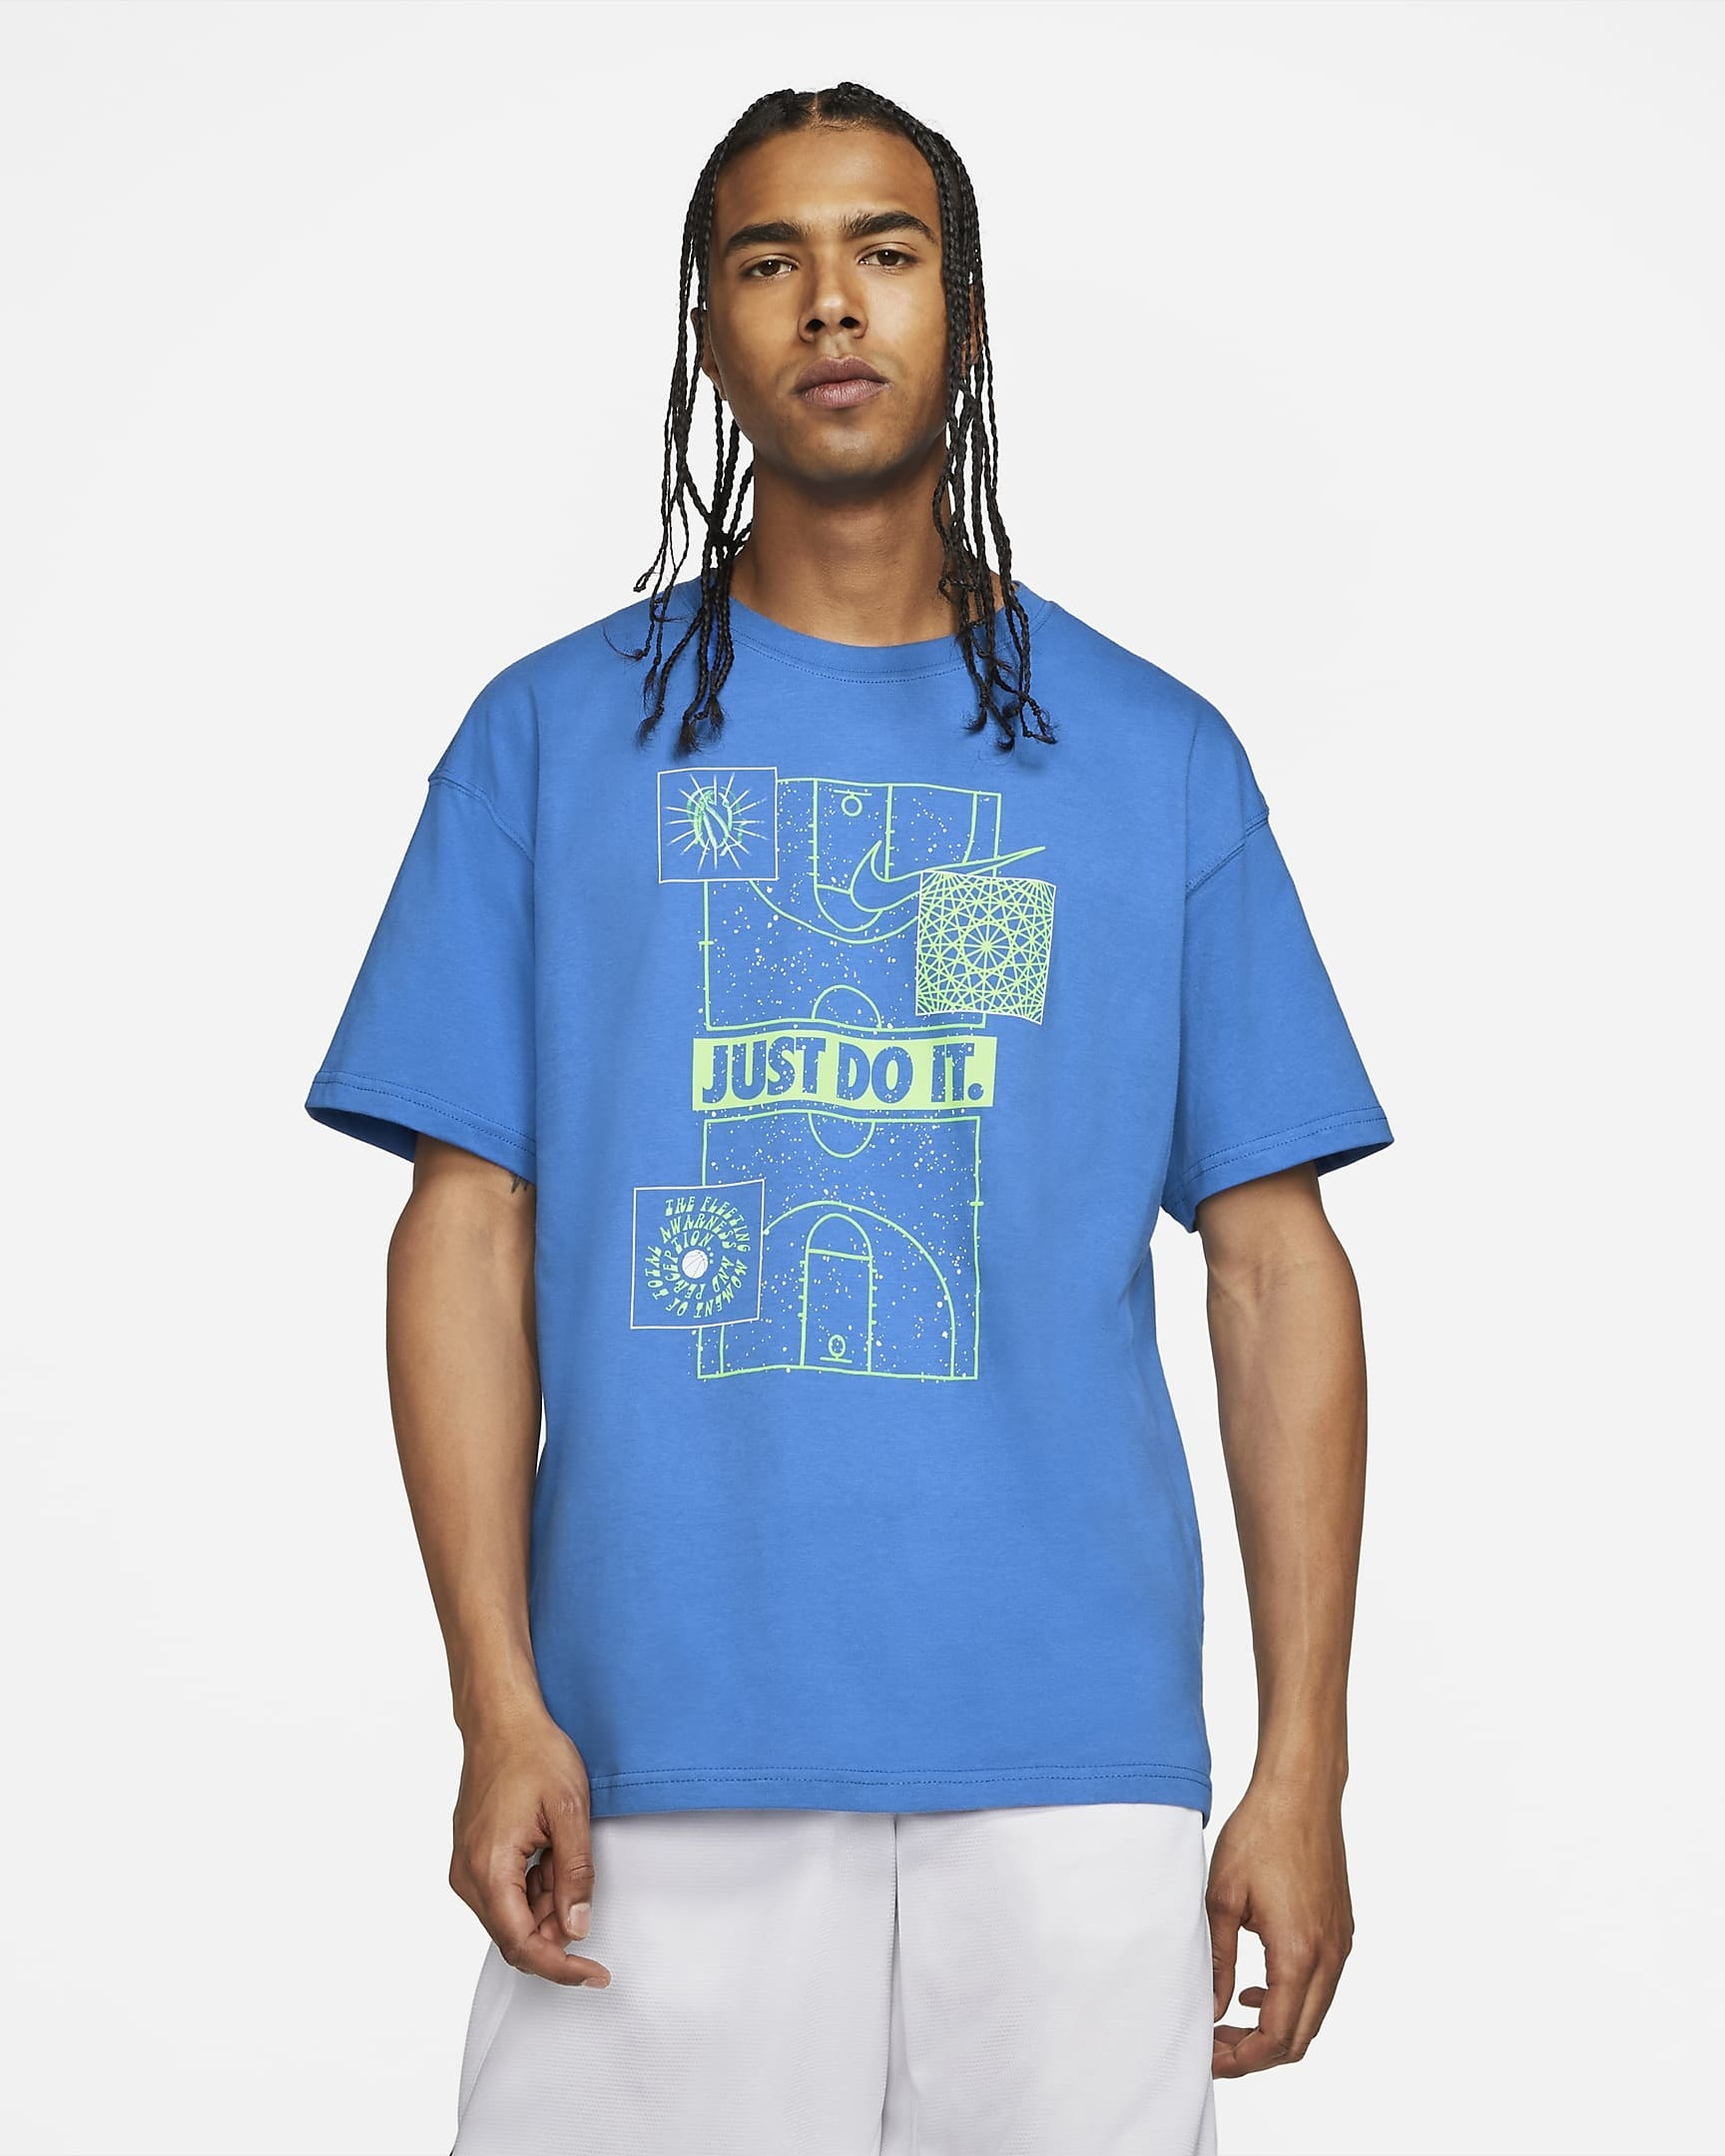 model wearing the t shirt with slogan just do it on the chest